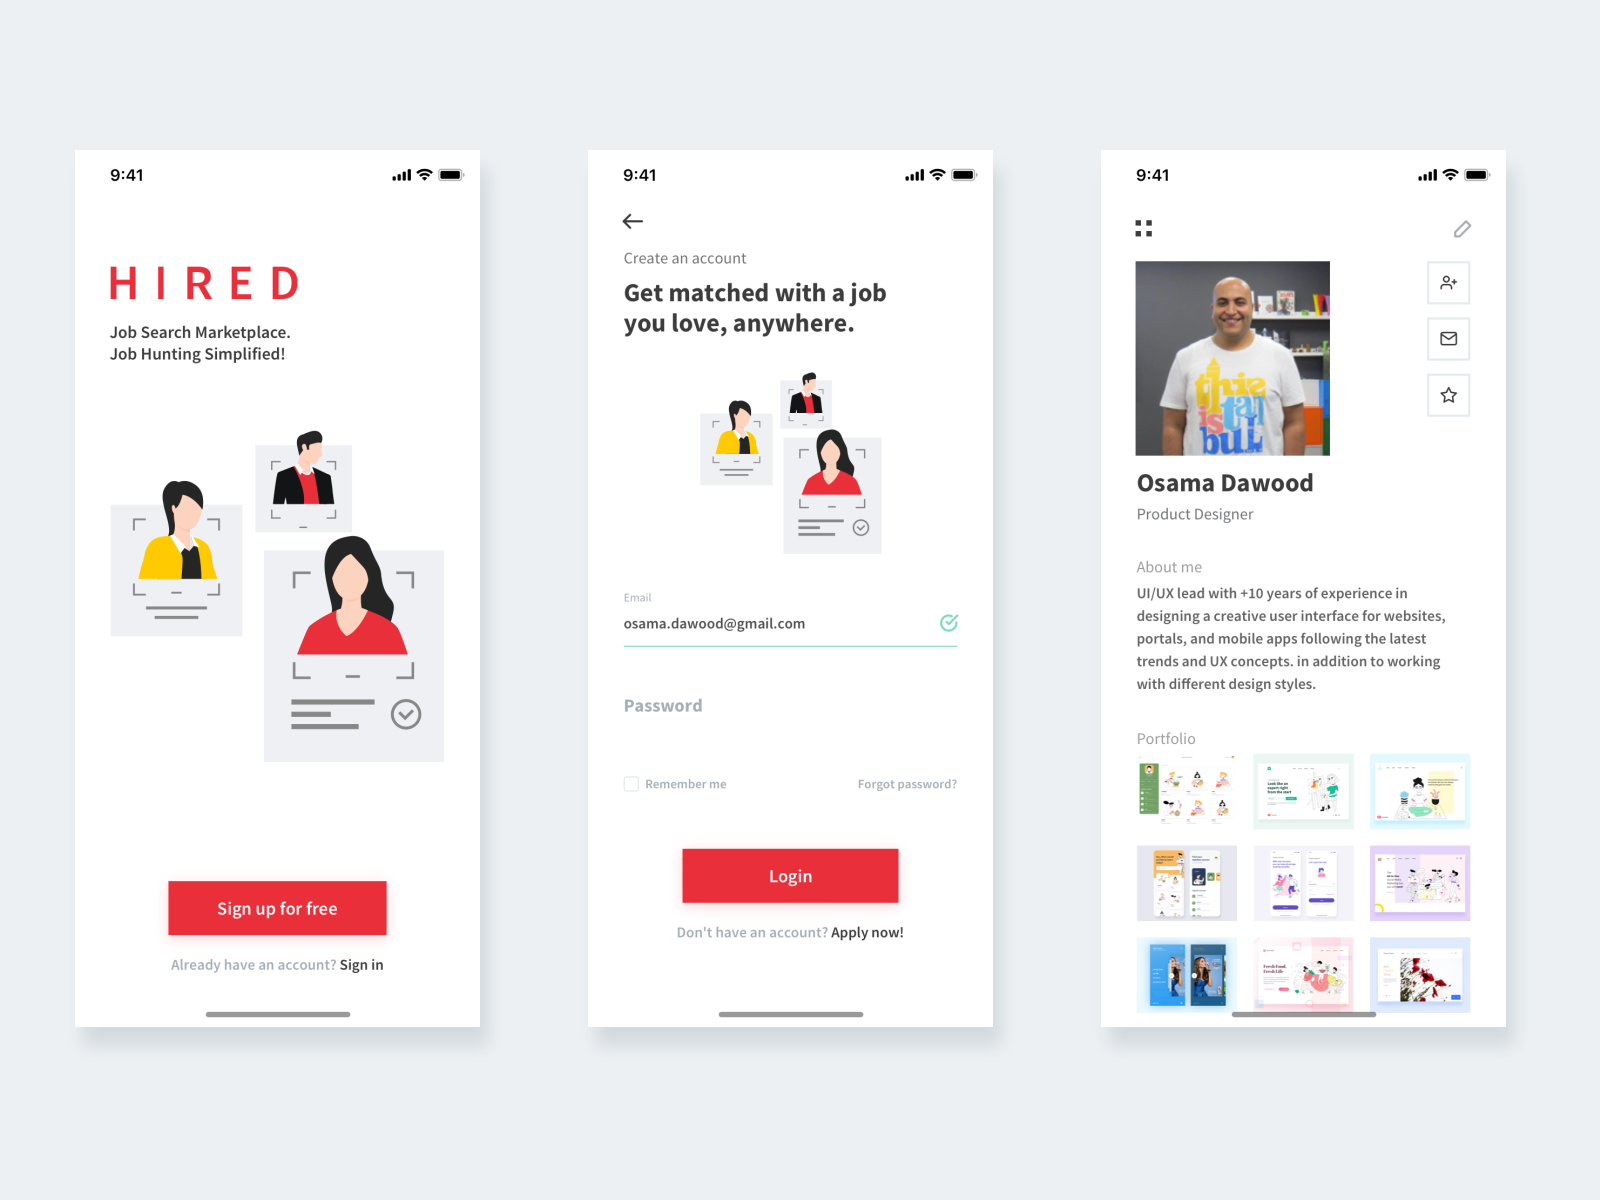 Hired Mobile App Design By Osama Dawood On Dribbble